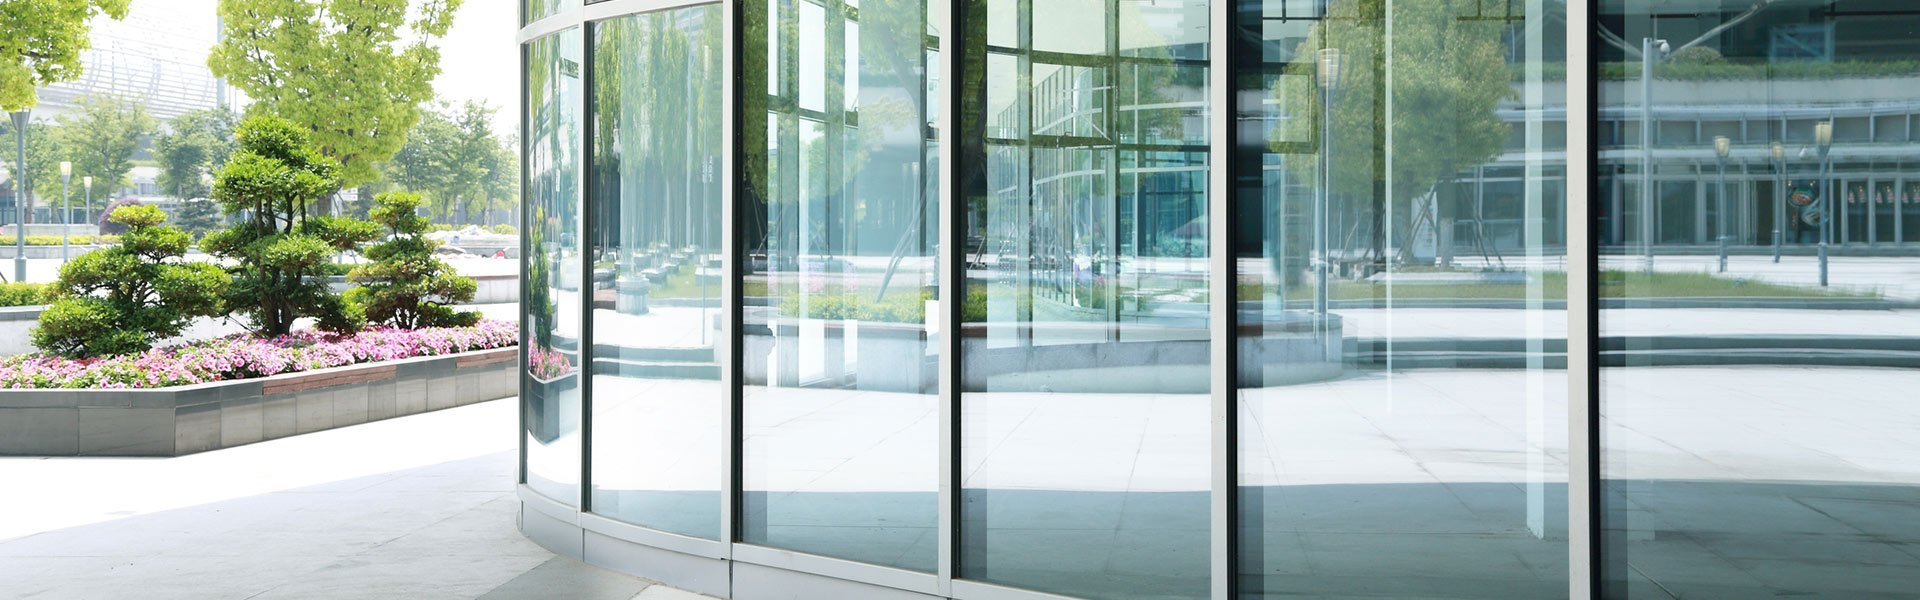 panther glass pty ltd office building glass wall